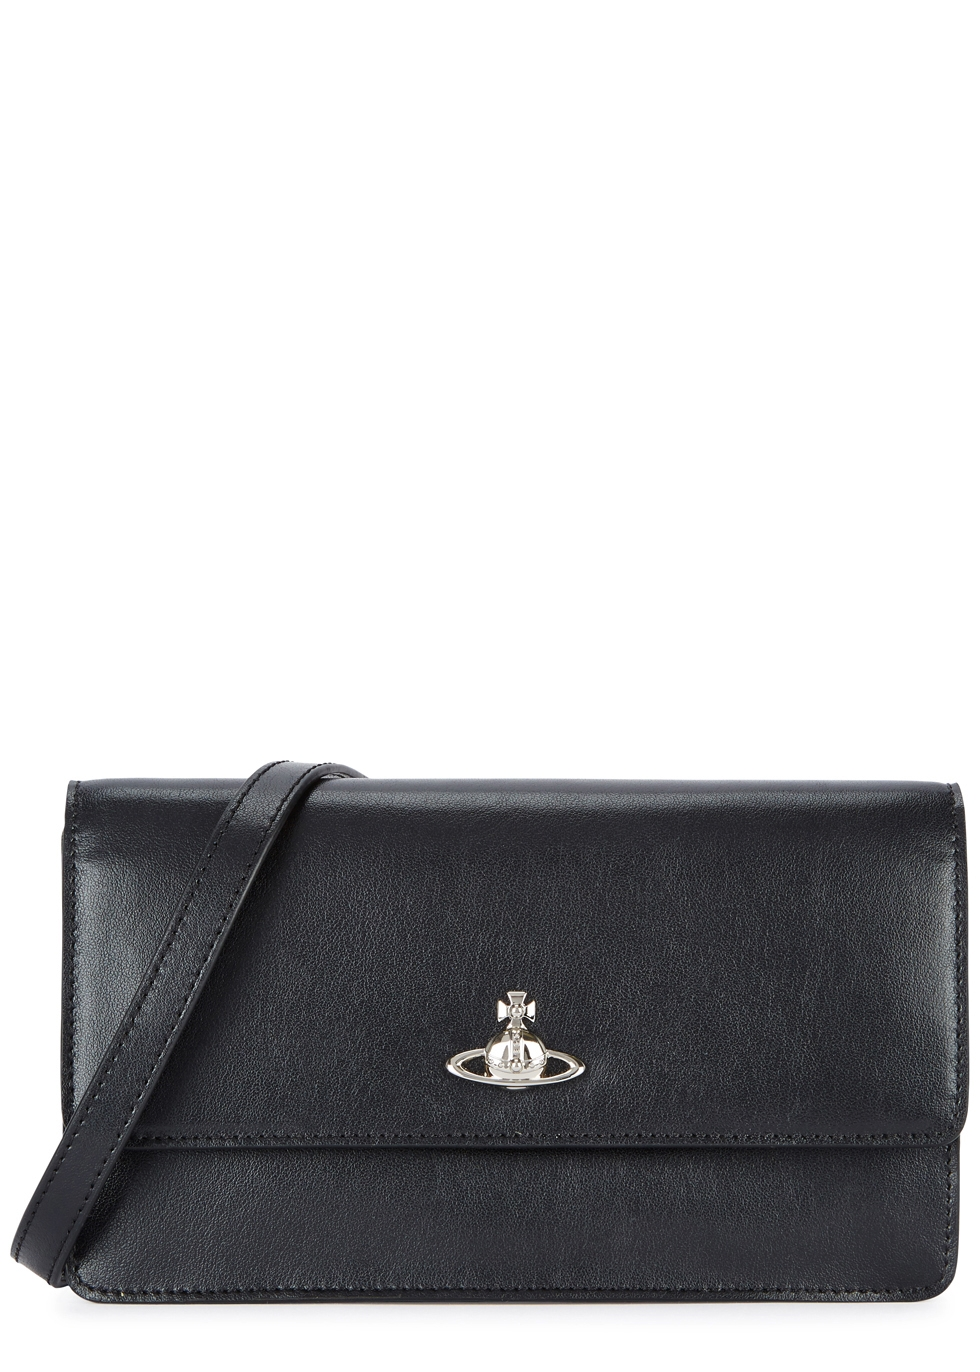 VIVIENNE WESTWOOD MATILDA BLACK LEATHER CLUTCH